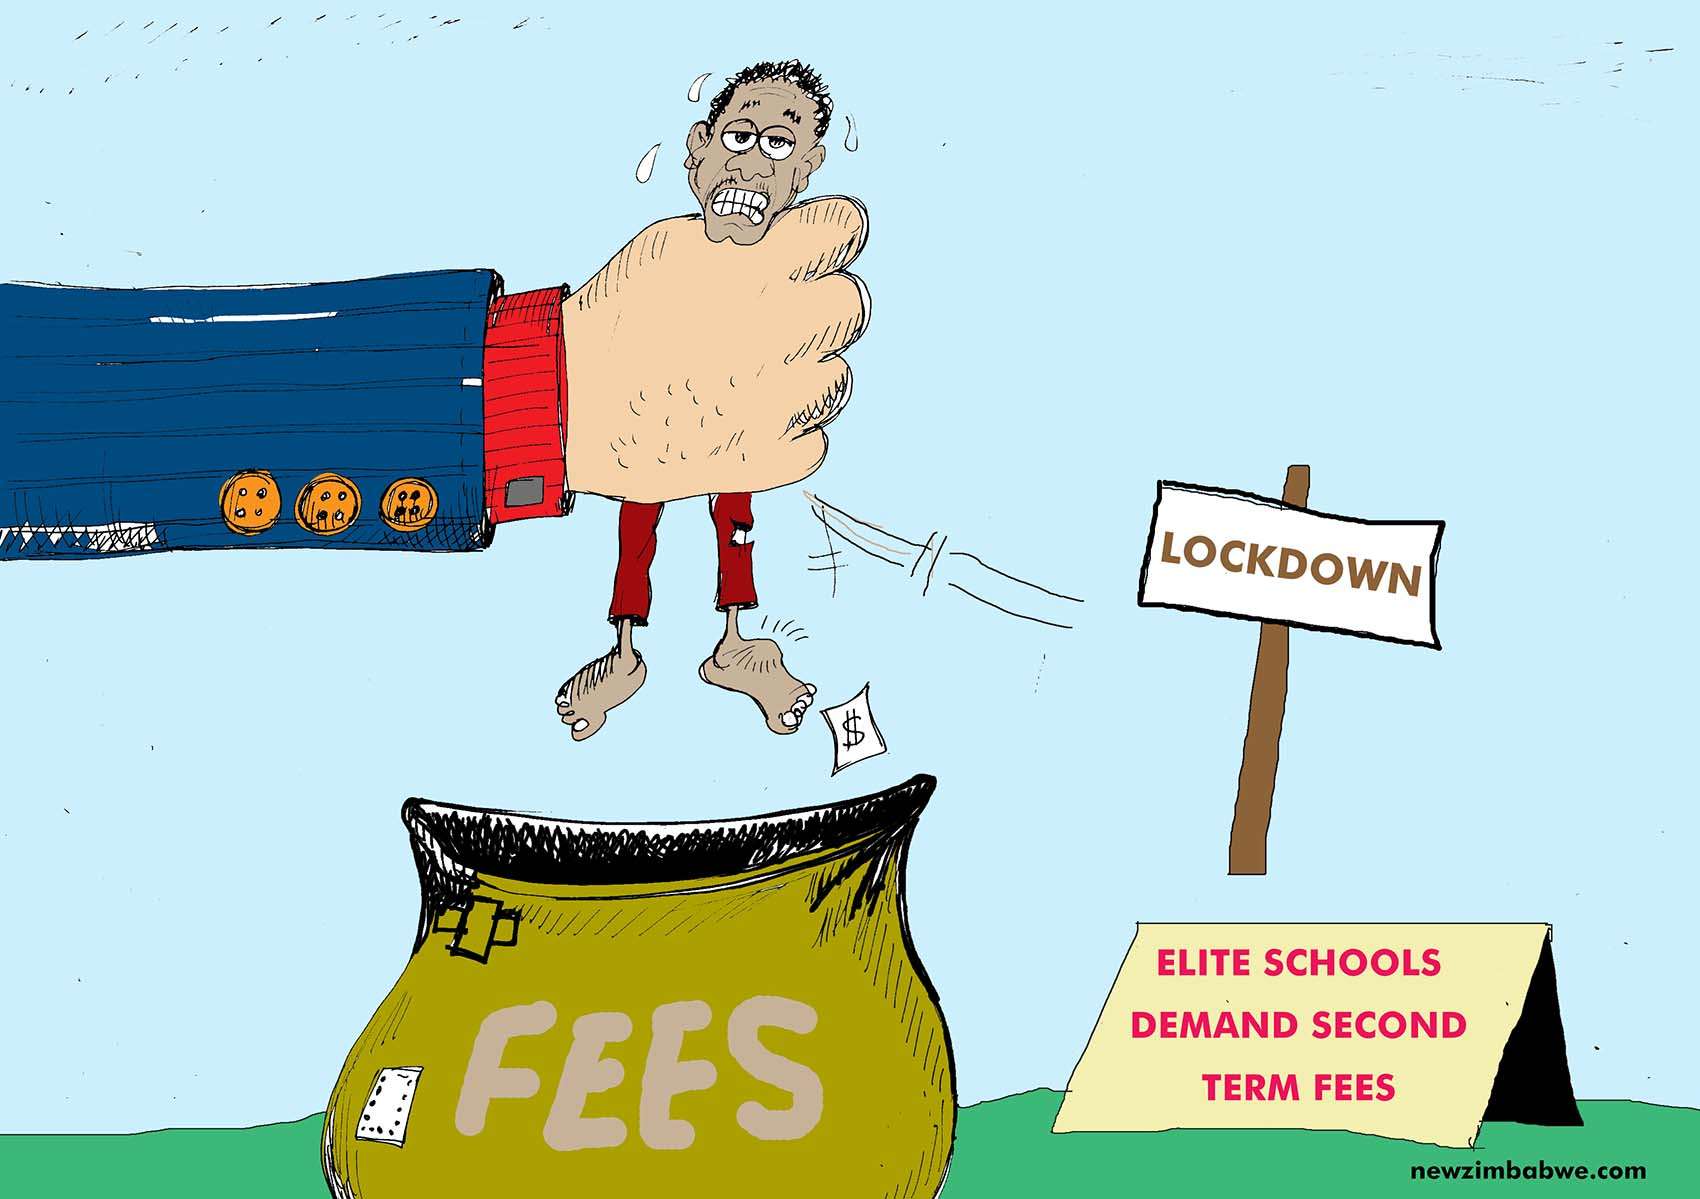 Schools demand second term fees